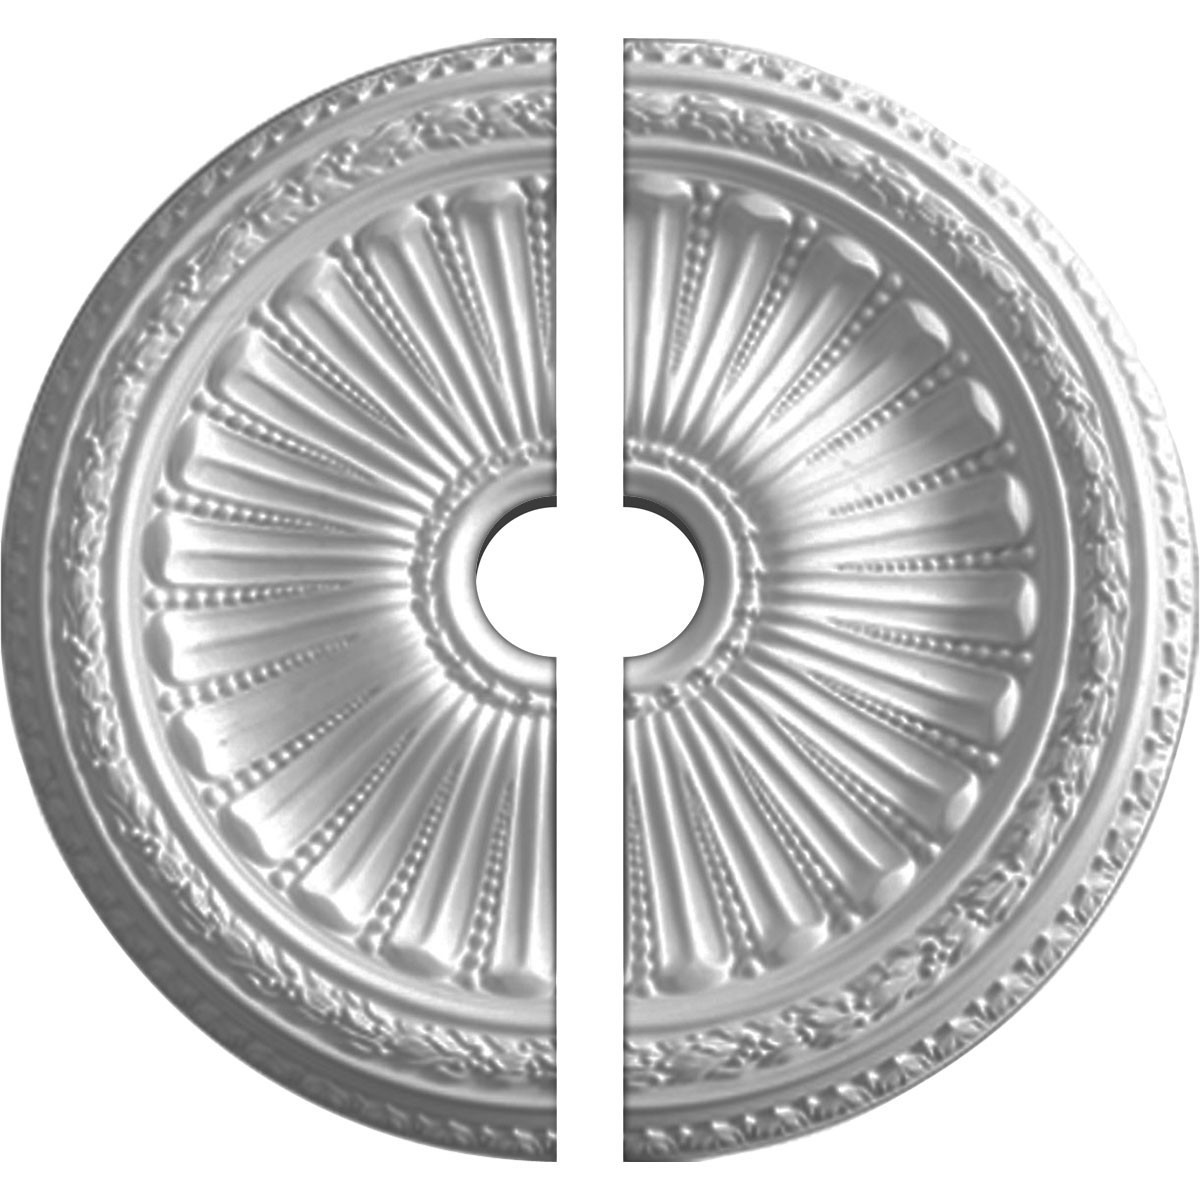 """EM-CM35VI2 - 35 1/8""""OD x 4 7/8""""ID x 2 1/2""""P Viceroy Ceiling Medallion, Two Piece (Fits Canopies up to 4 7/8"""")"""